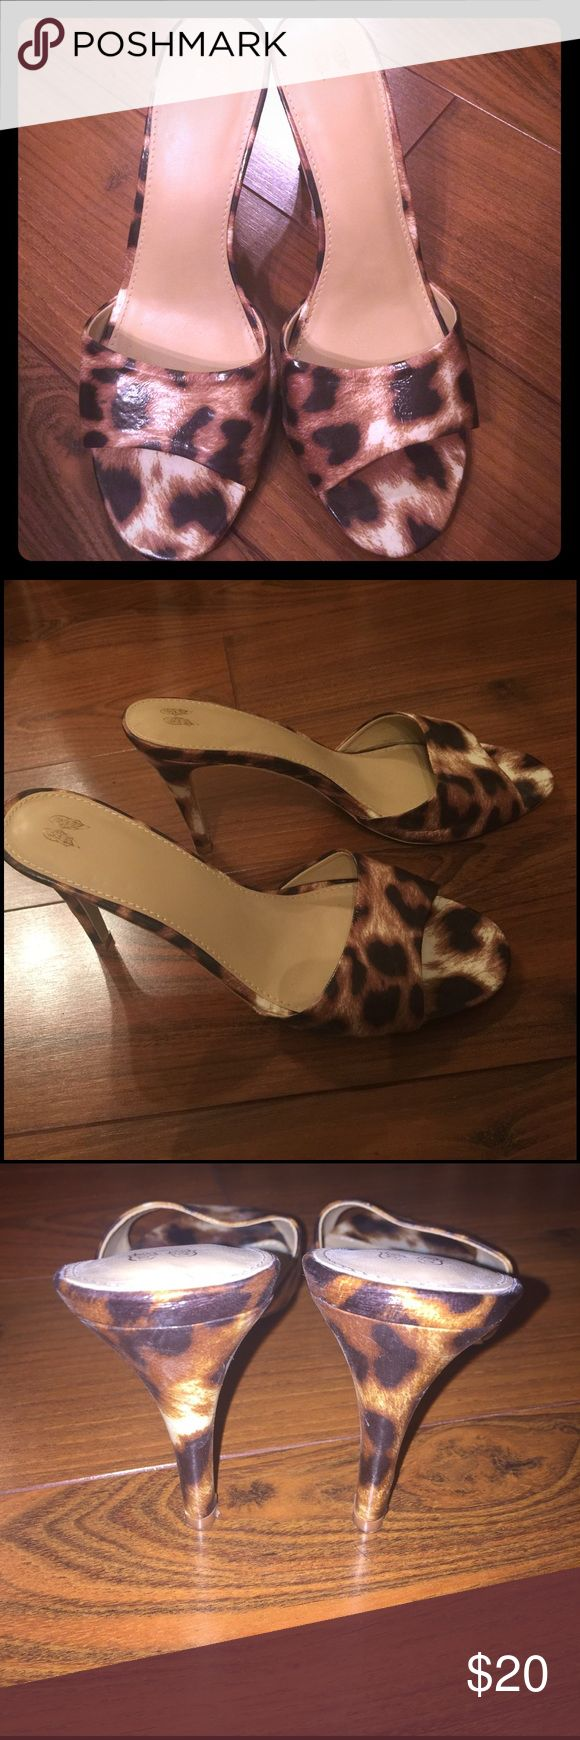 Victoria's Secret Animal Print High Heels I only attempted to wear these twice as they are a little too narrow for me! Size on the bottom says 8B but I'm not sure what the B stands for. I bought them online from Victorias Secret and wanted them to fit since they're so cute! Hopefully someone else can get their use out of them :) Victoria's Secret Shoes Heels